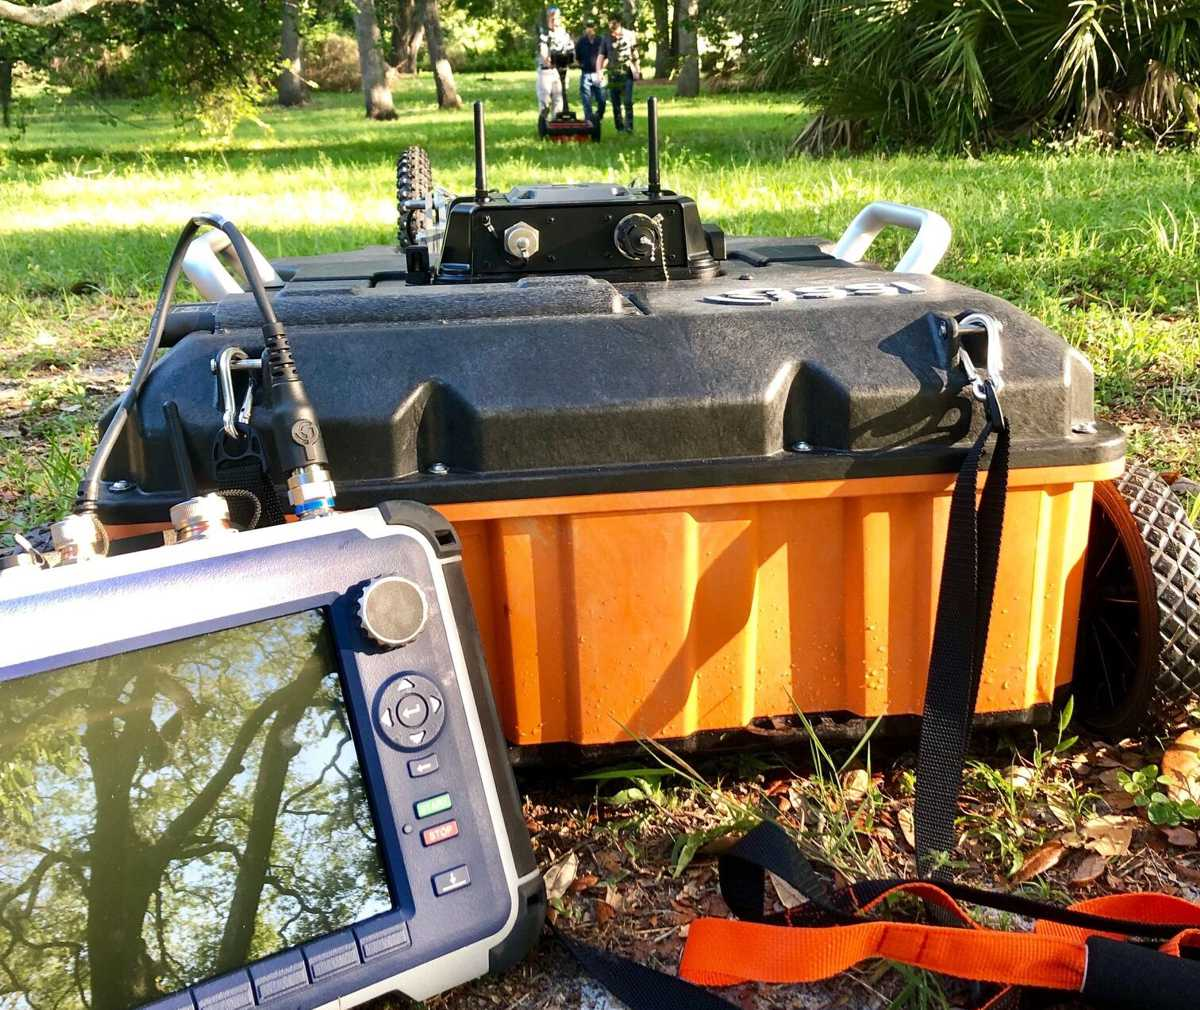 GSSI geophysical survey equipment featured at American Geophysical Union Fall Meeting